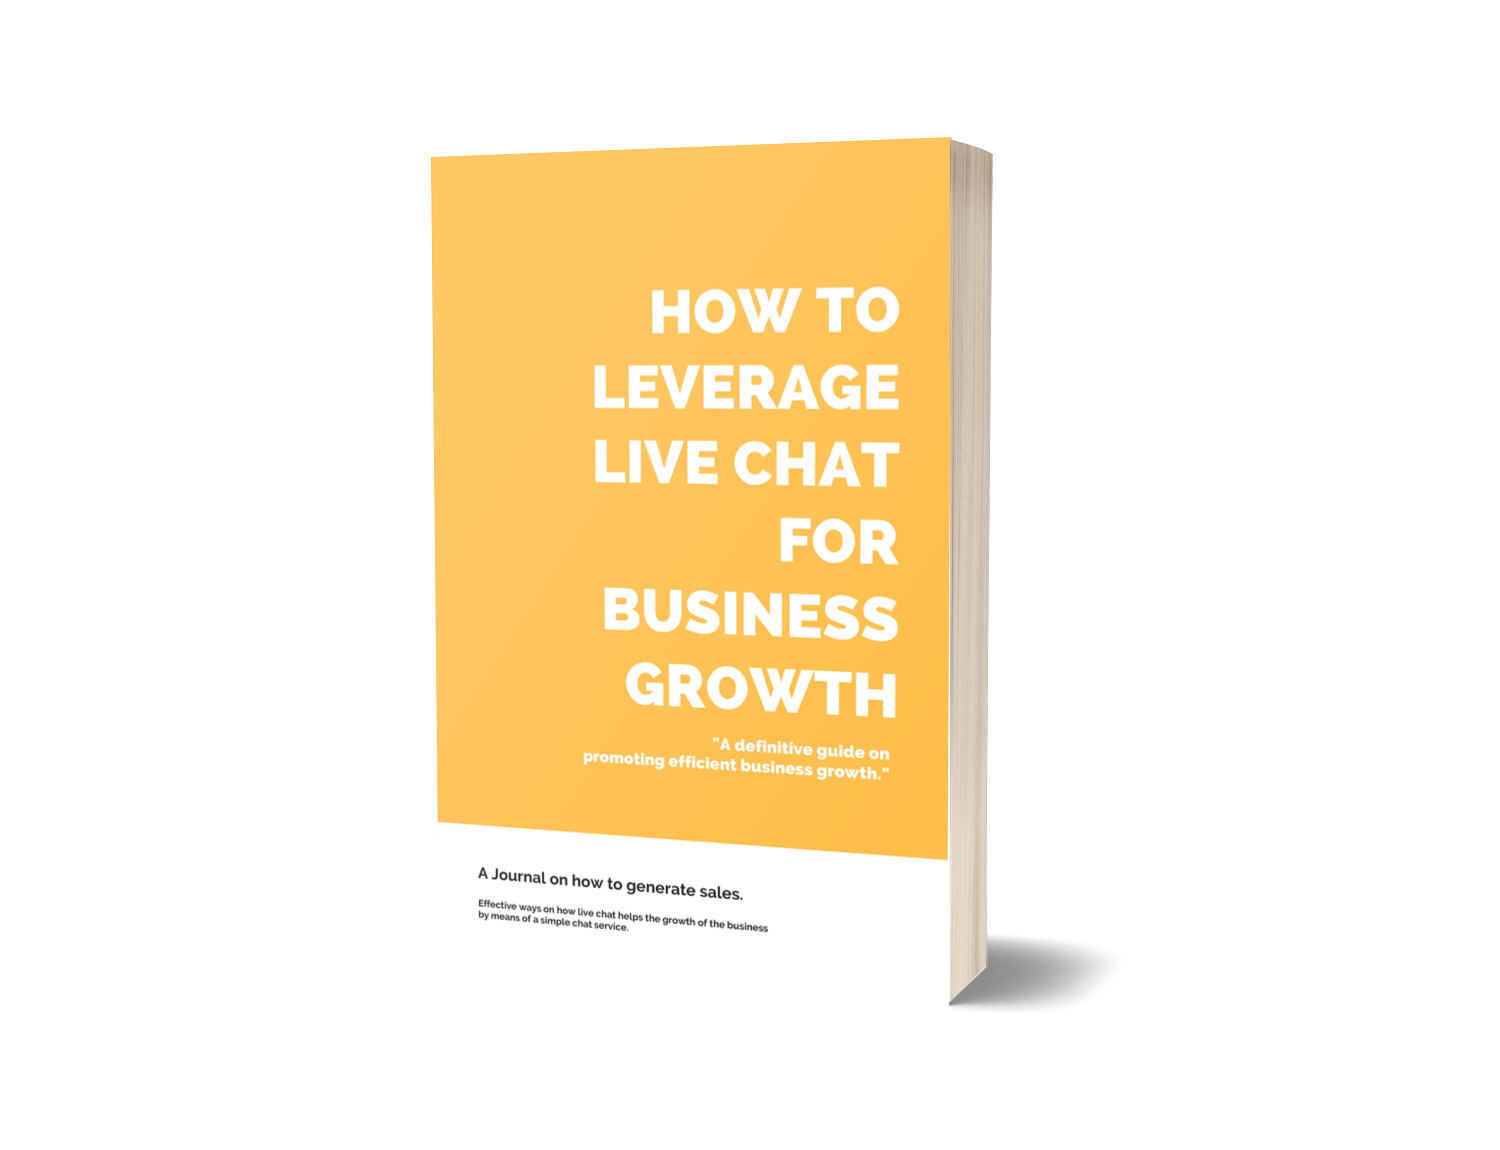 Definitive Guide on How To Leverage Business Growth 2018